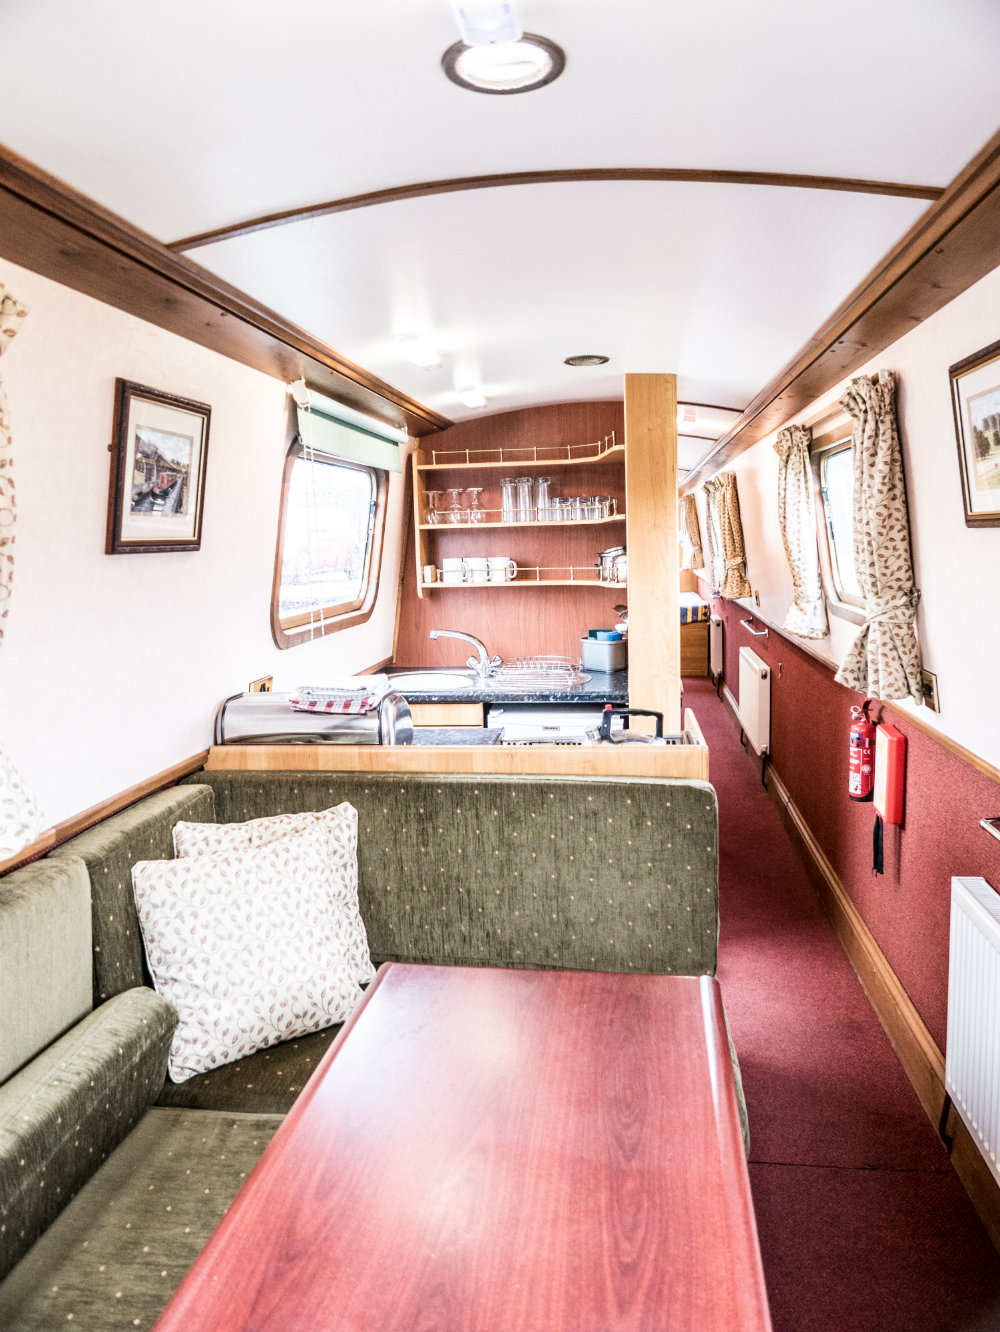 The Star8 class canal boat